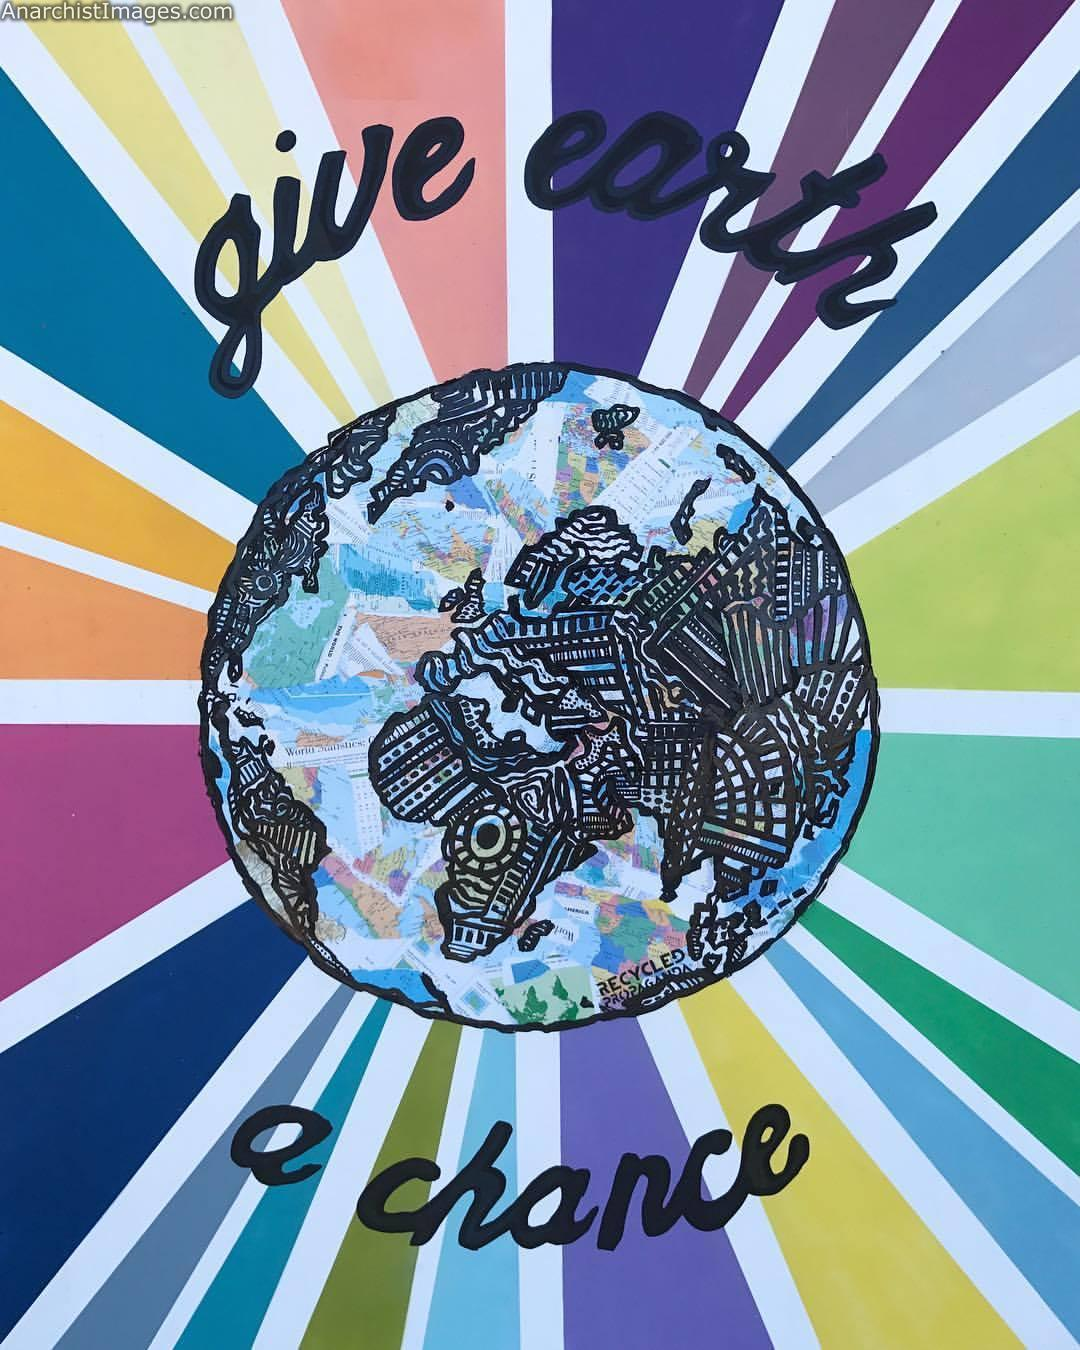 """Give earth a chance 48x60"""", mixed media on framed wood hanging at the new @vegenation location"""